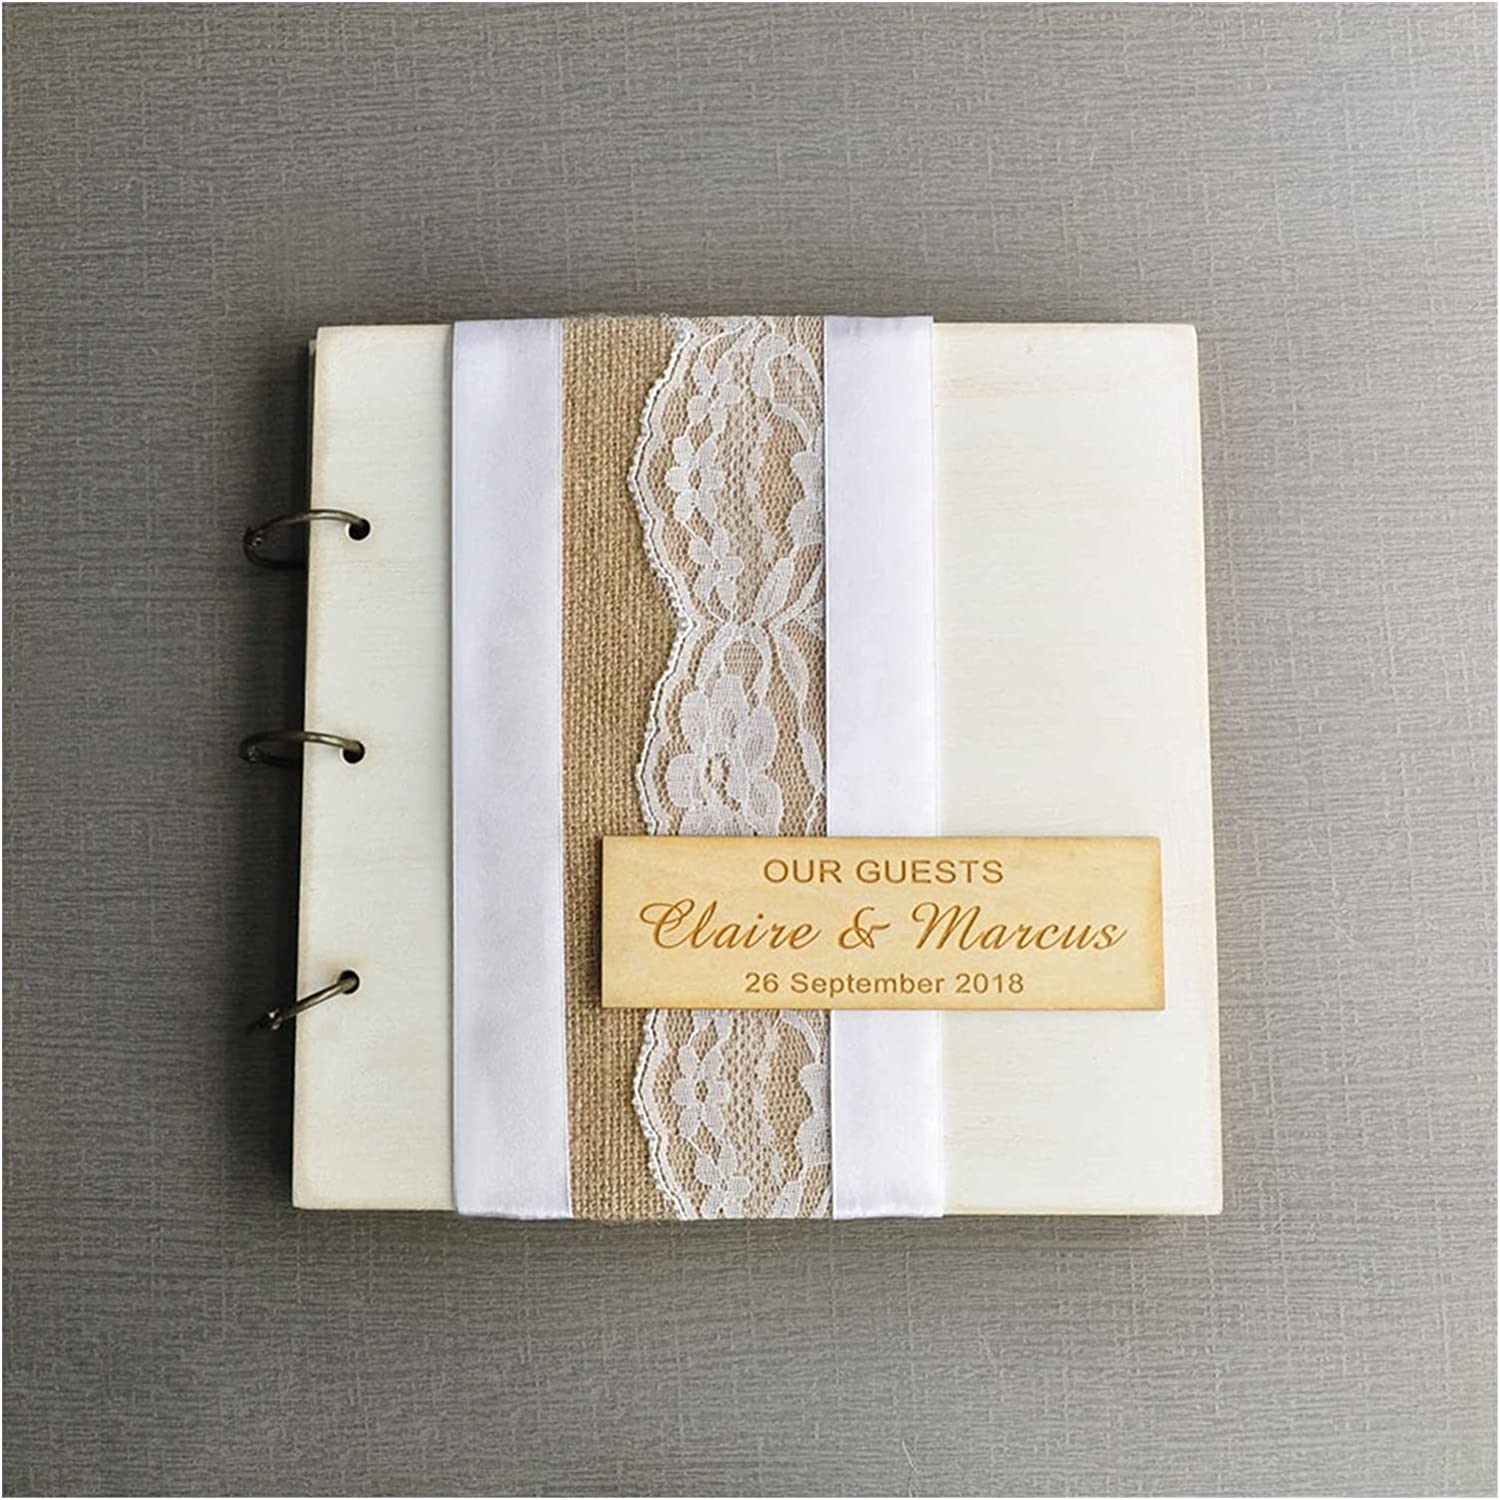 HUMINGG Houston Mall Wedding Guest Book Guestbook Atlanta Mall Vintage Guests Our